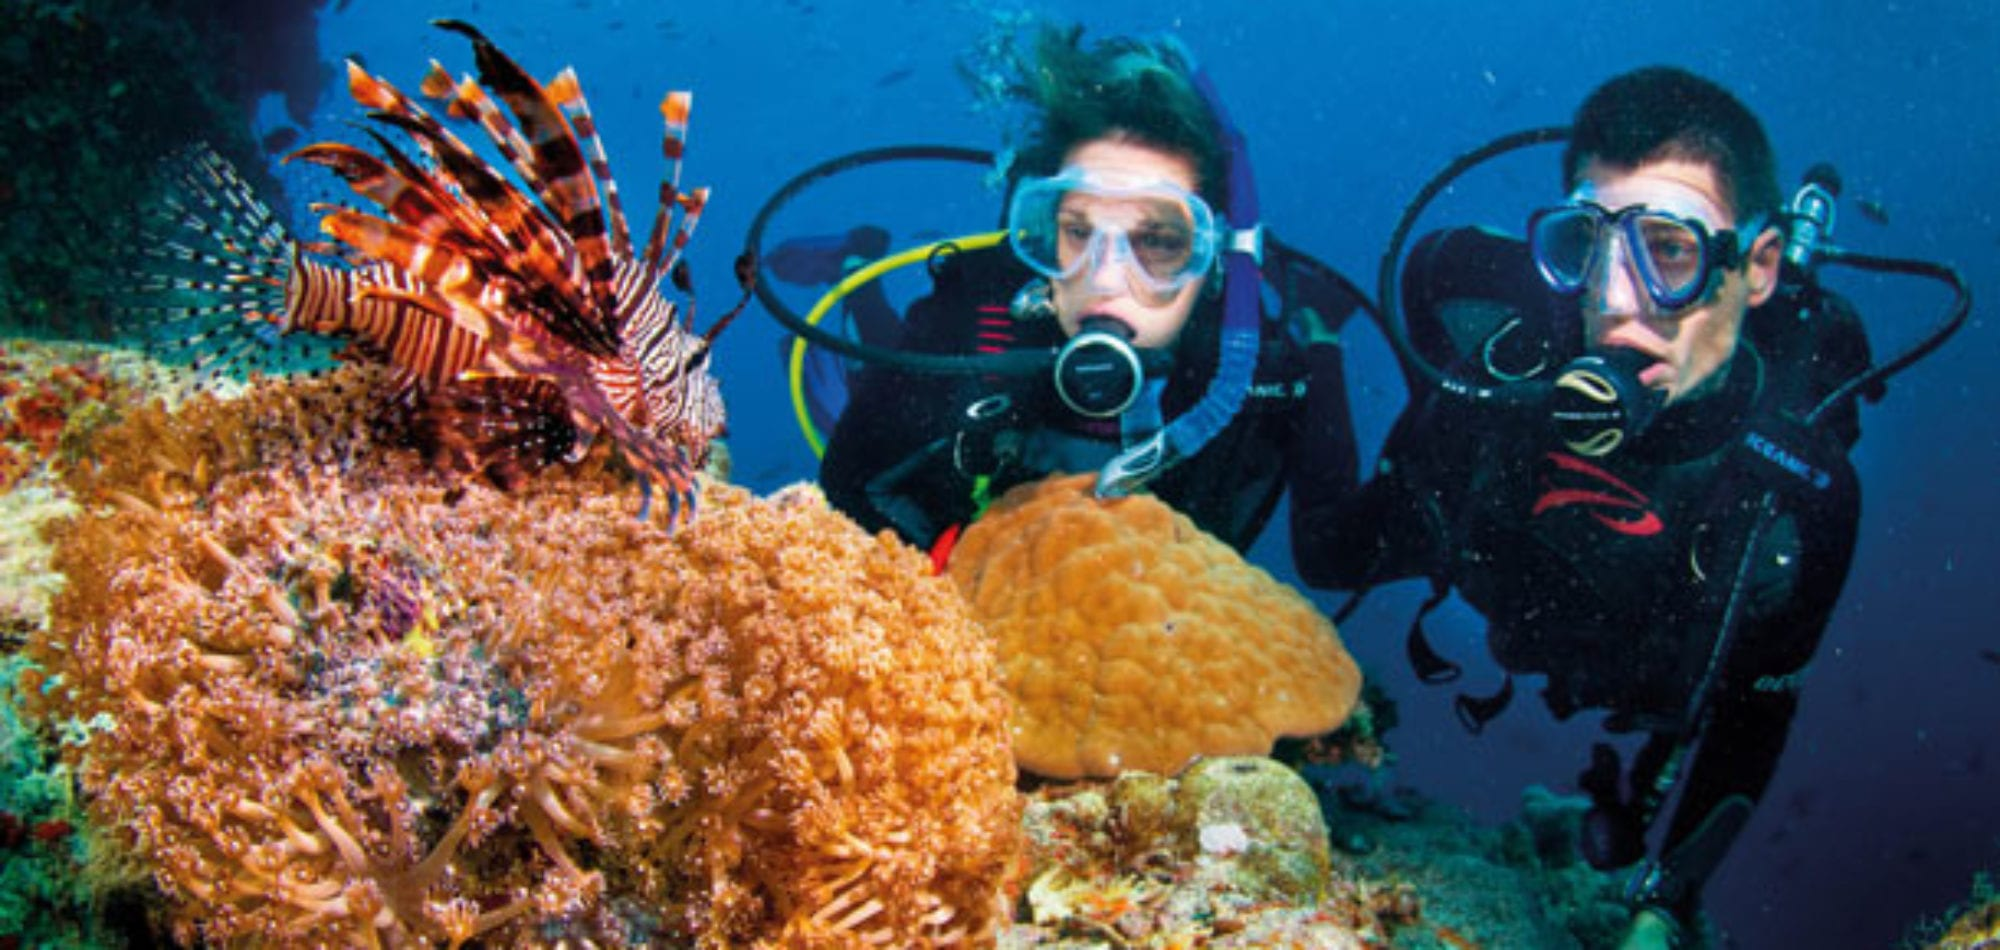 Cairns day trip - scuba divers on the Great Barrier Reef